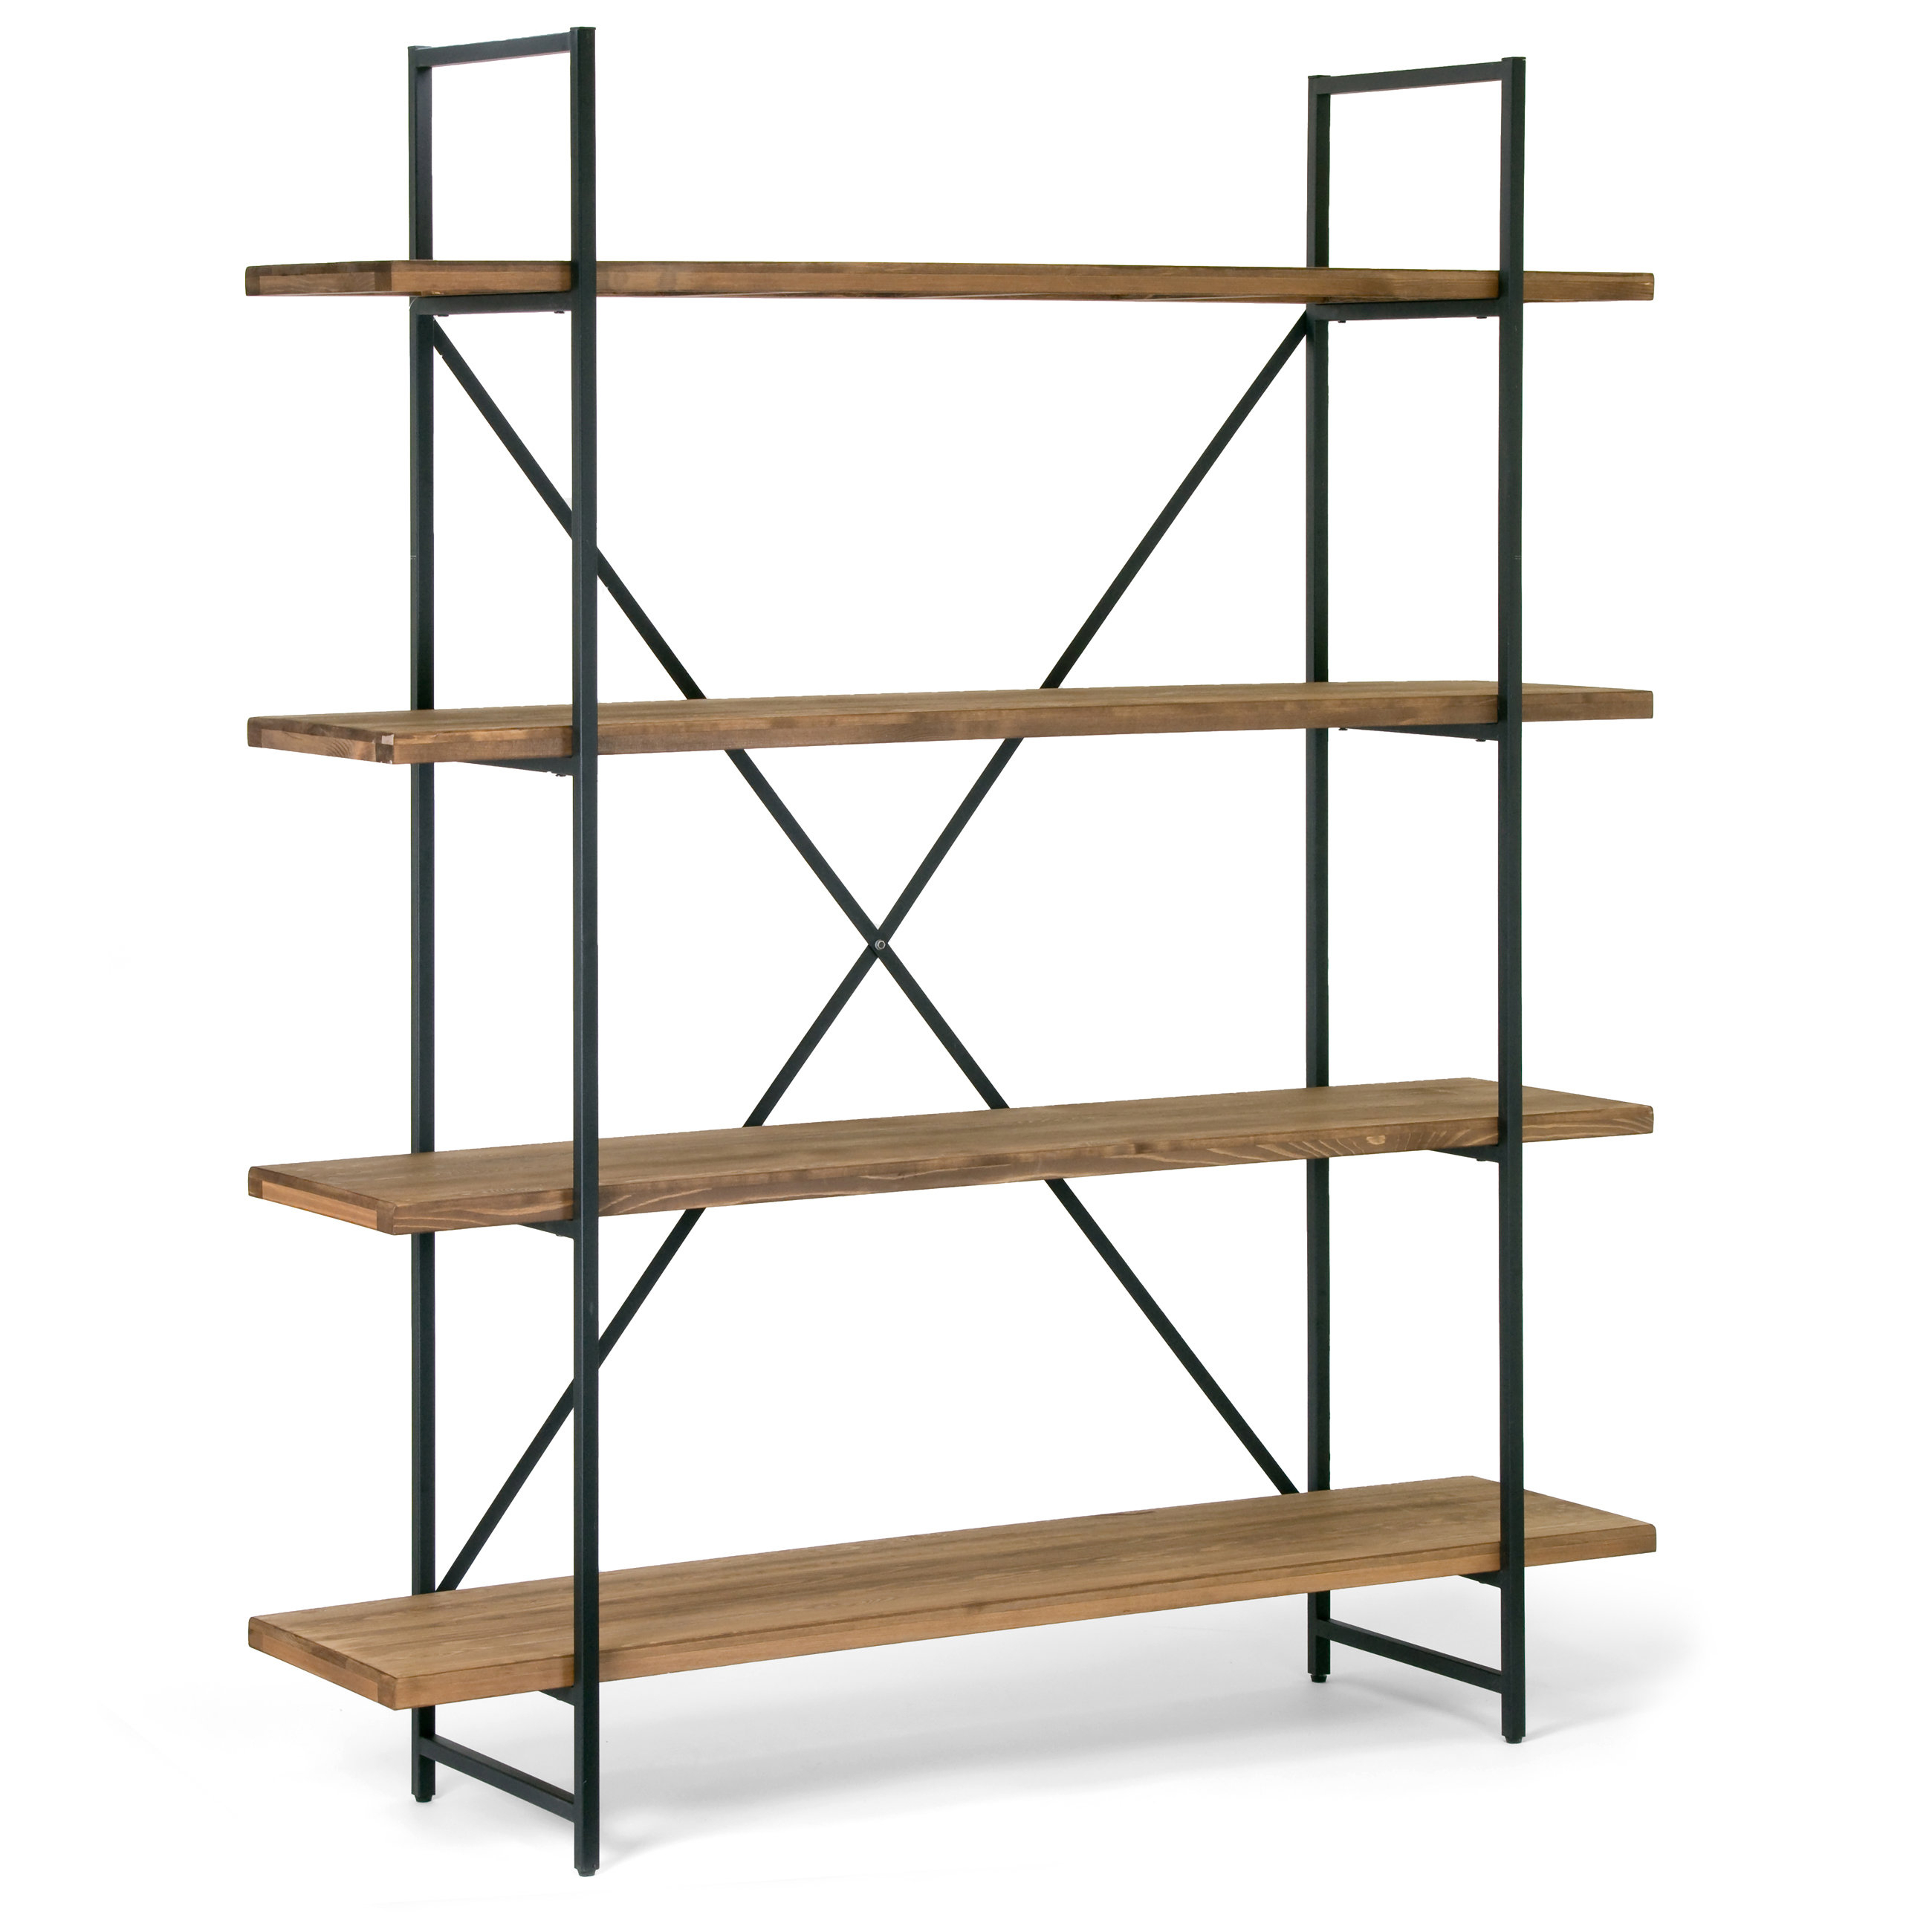 Joss & Main Pertaining To Champney Etagere Bookcases (Gallery 6 of 20)